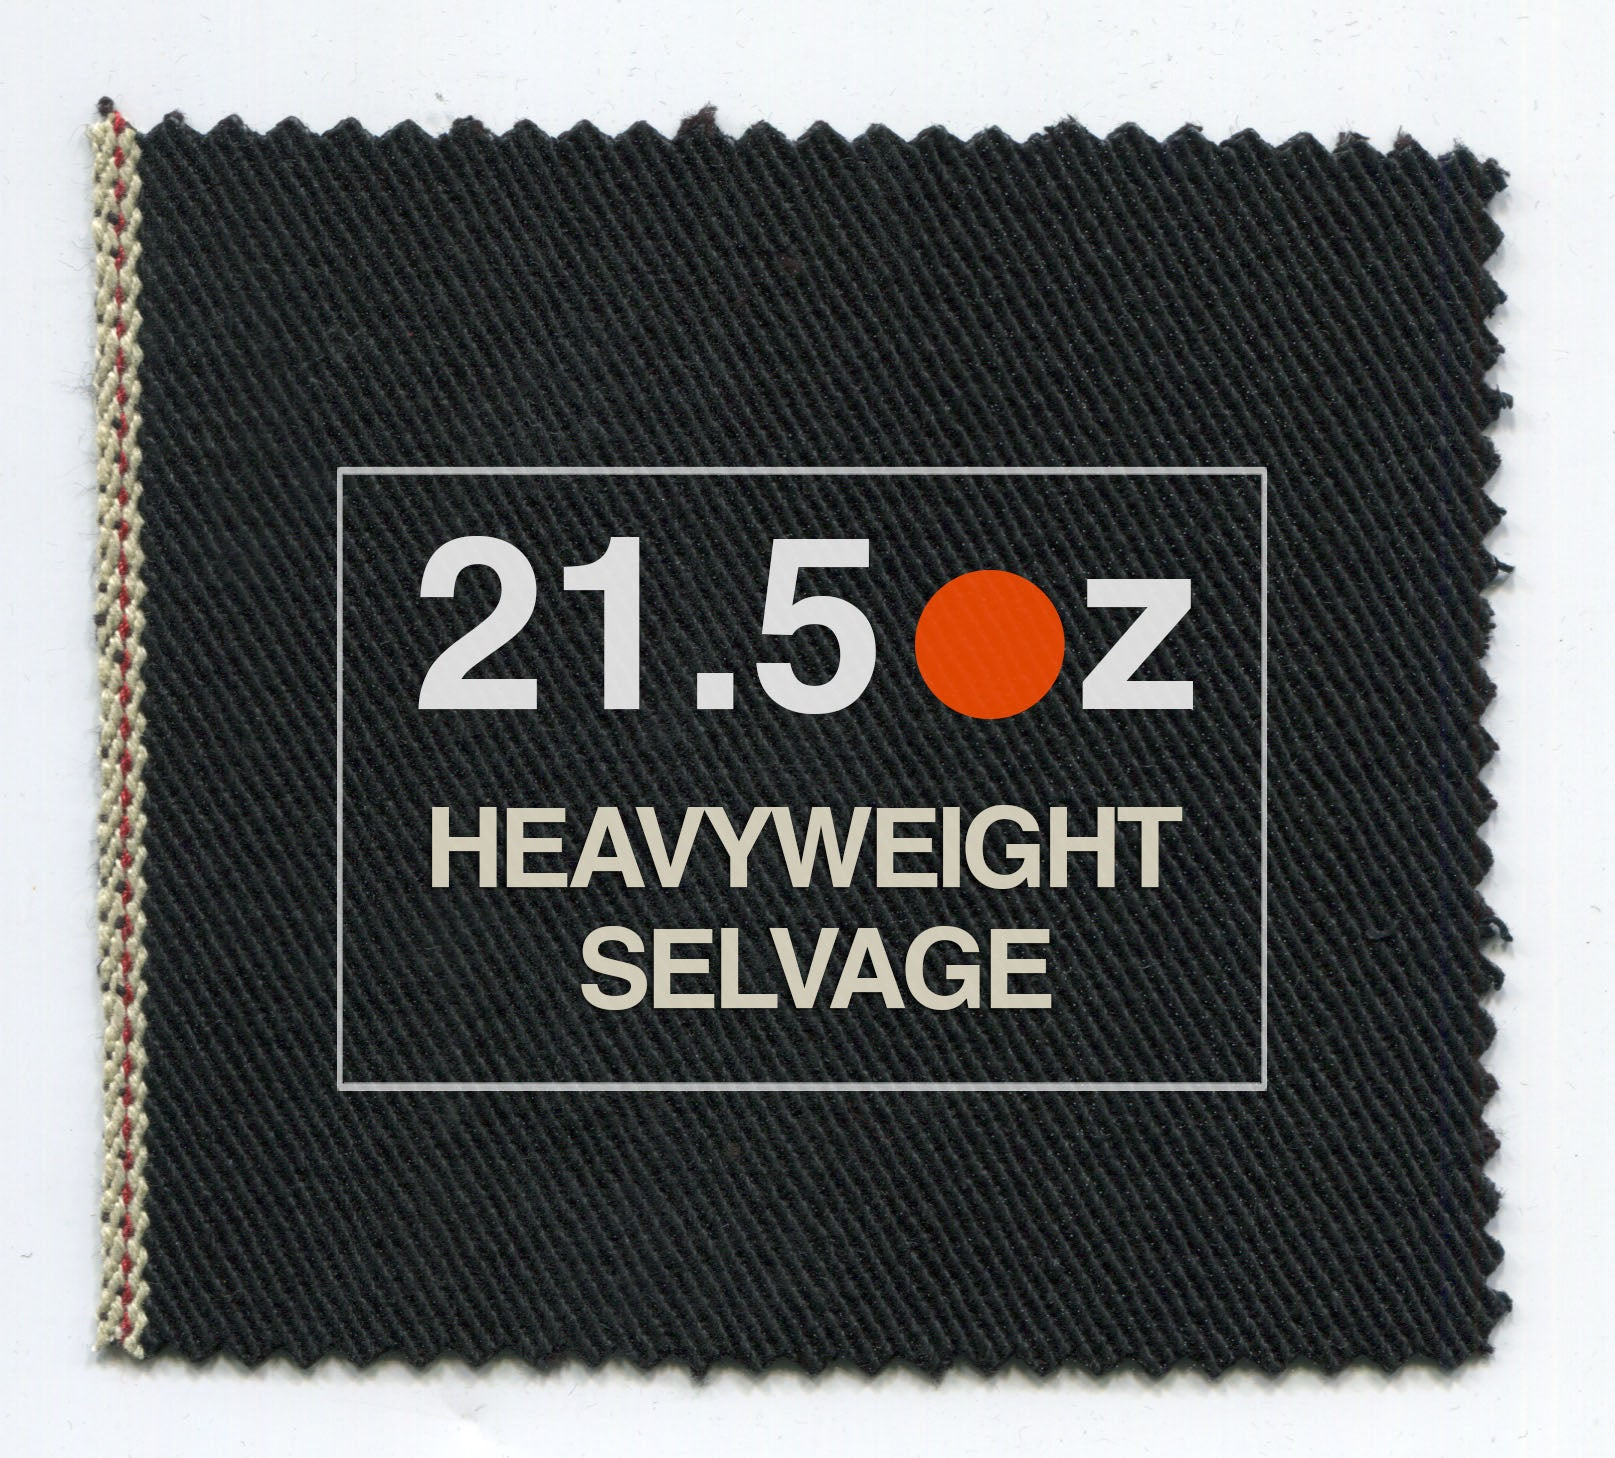 The True Straight 21.5oz Heavyweight Double Black Selvage